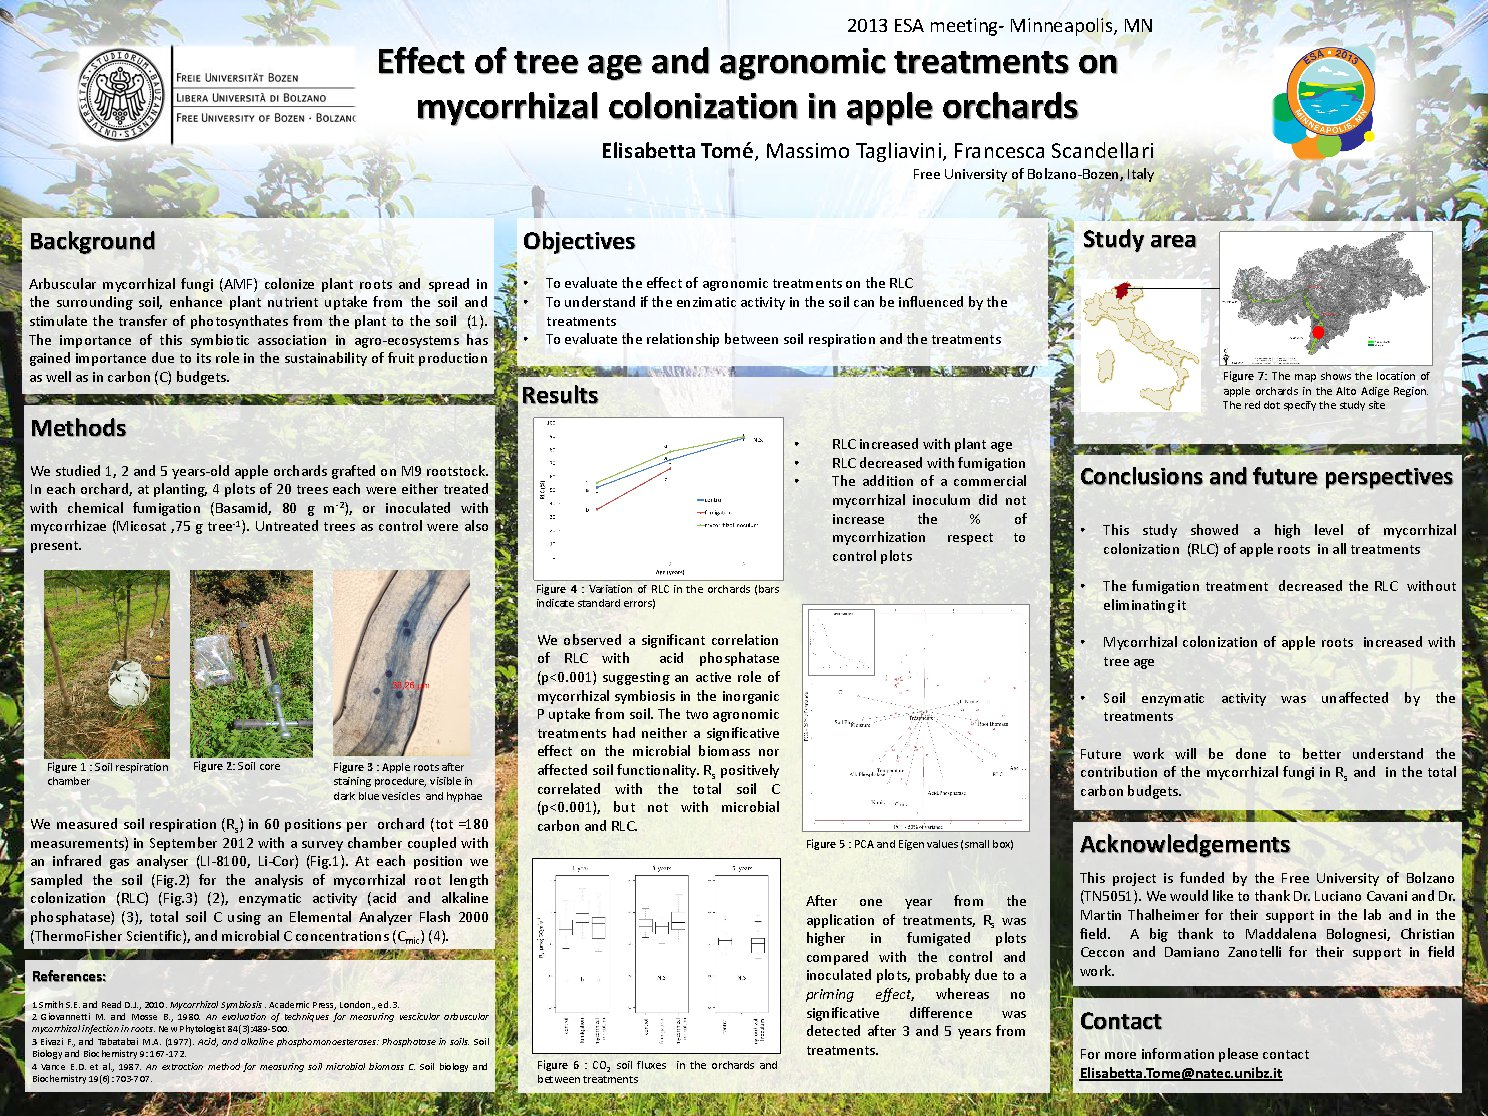 Effect Of Tree Age And Agronomic Treatments On Mycorrhizal Colonization In Apple Orchards by et1